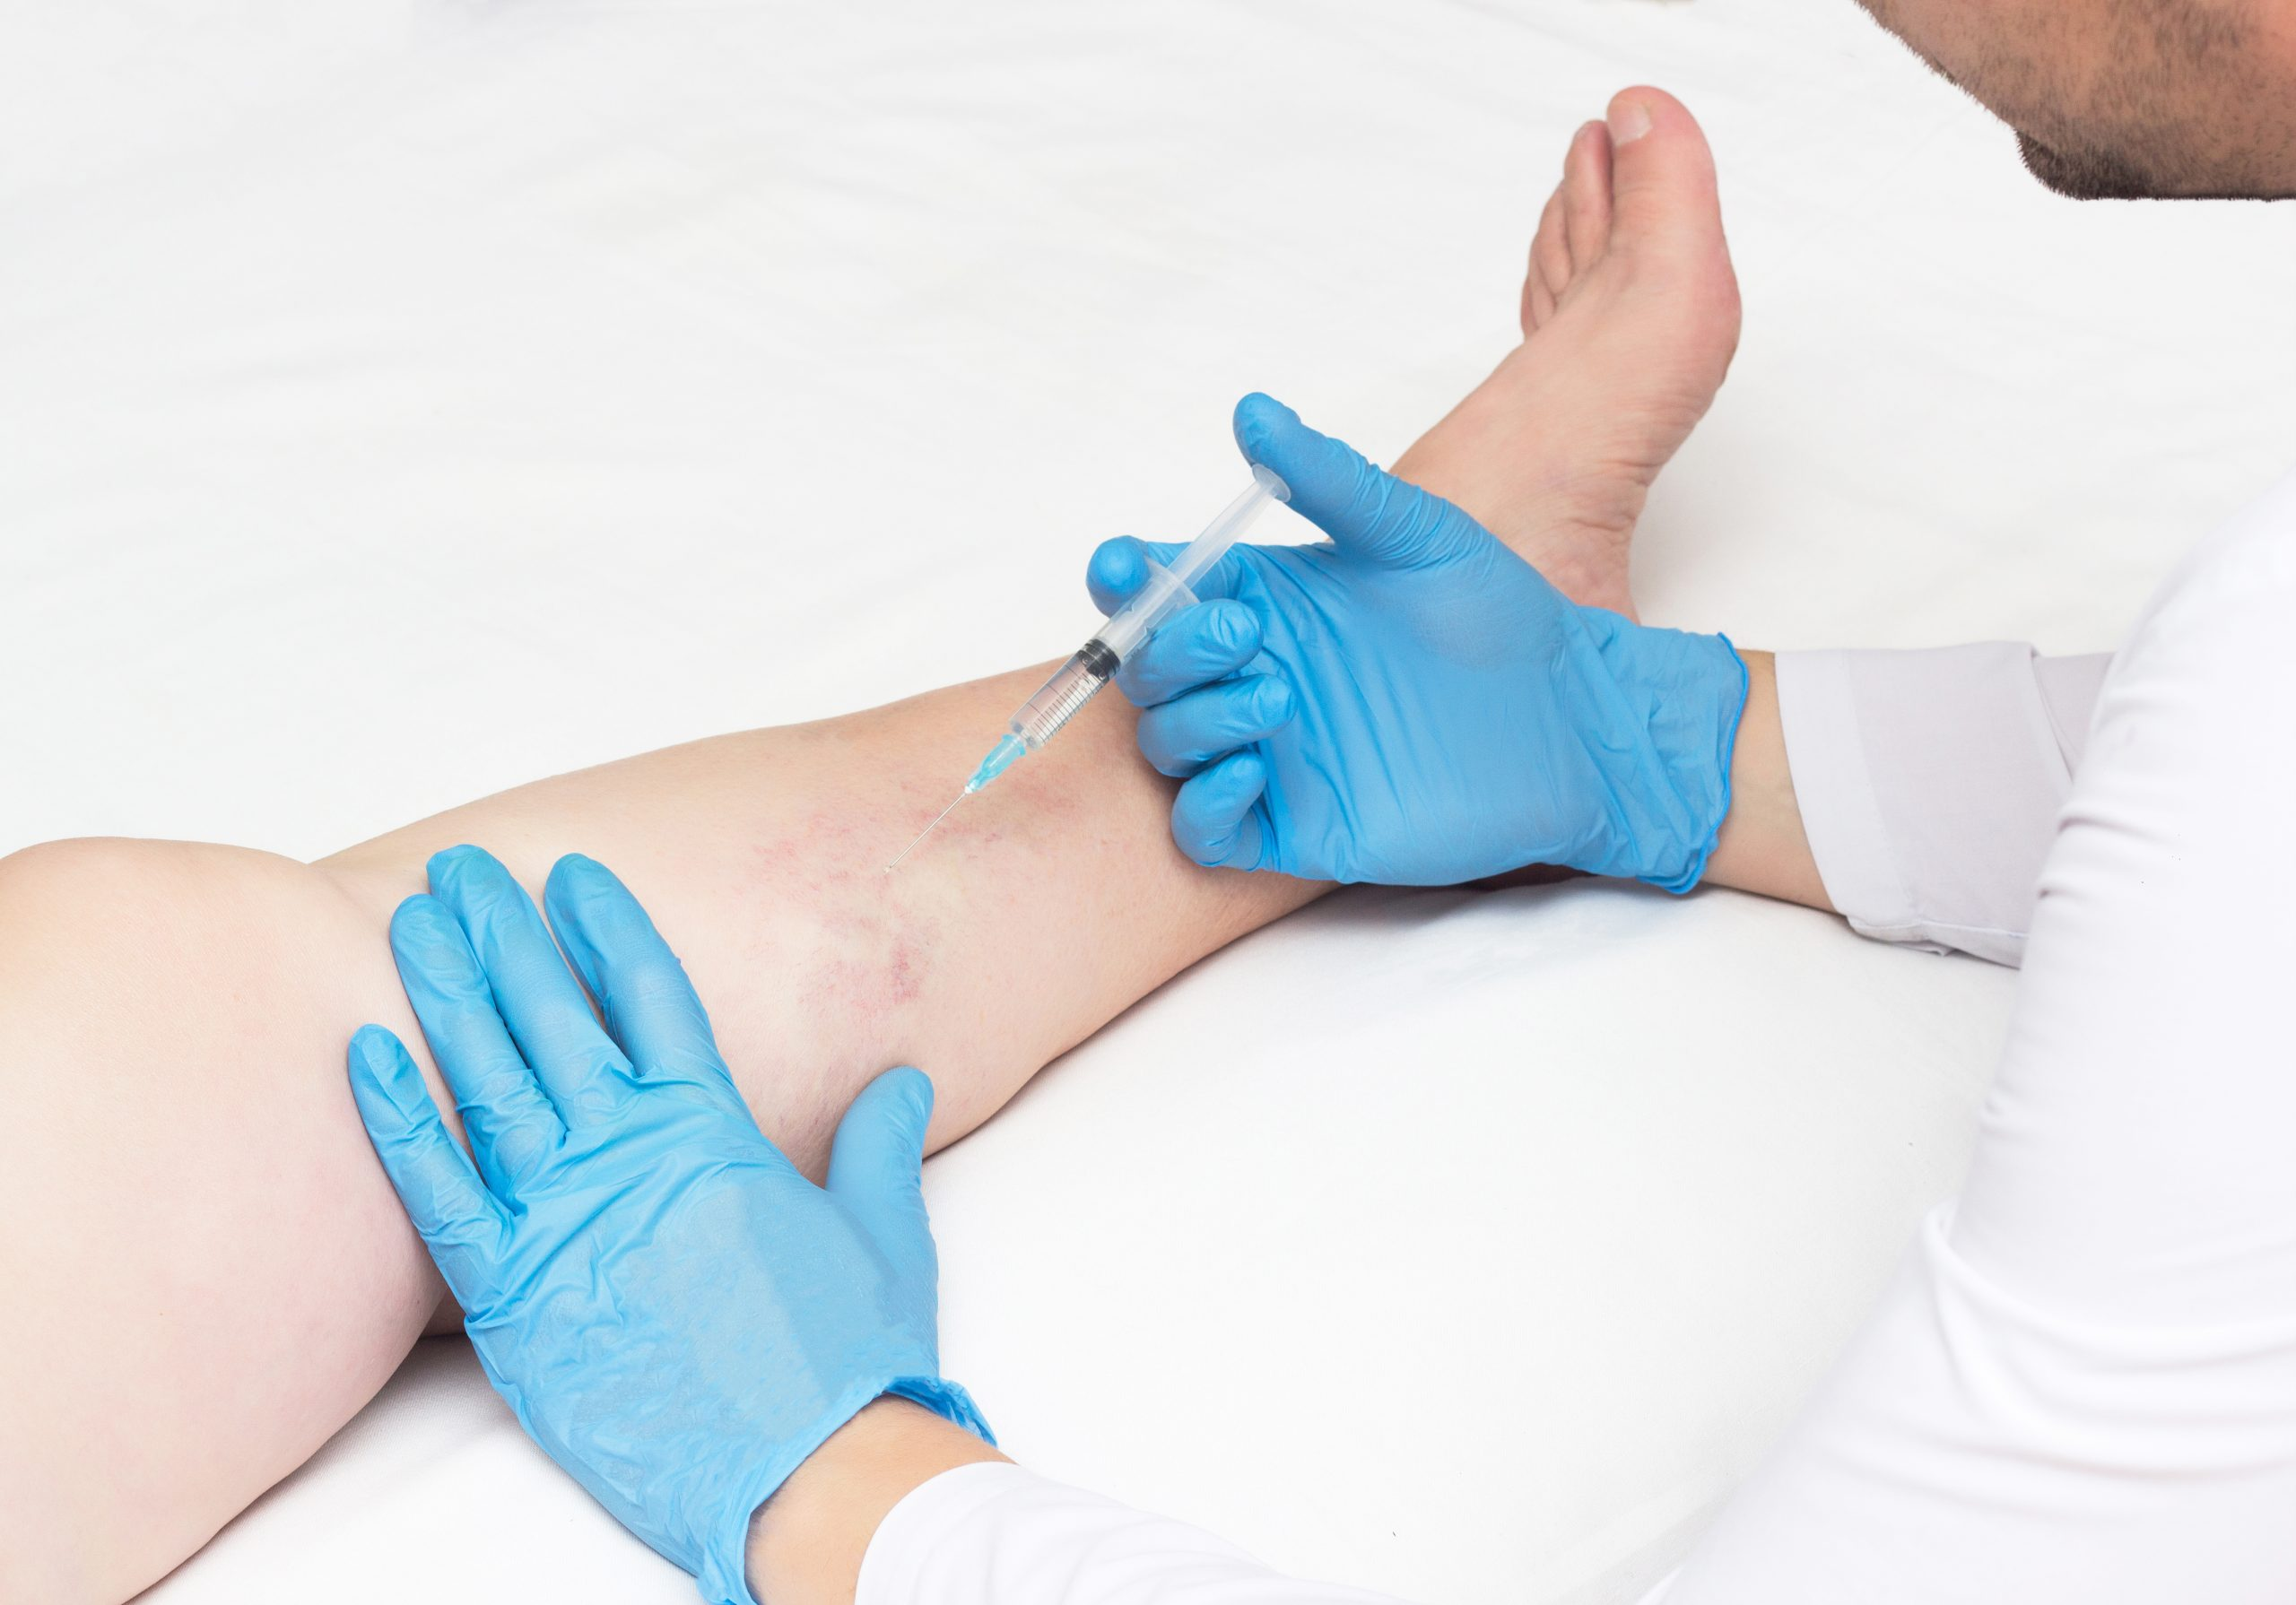 Are you looking for the best vein center in Long Island? In this article, we discuss how to find the best vein doctors and state-of-the-art vein treatment centers in Long Island.